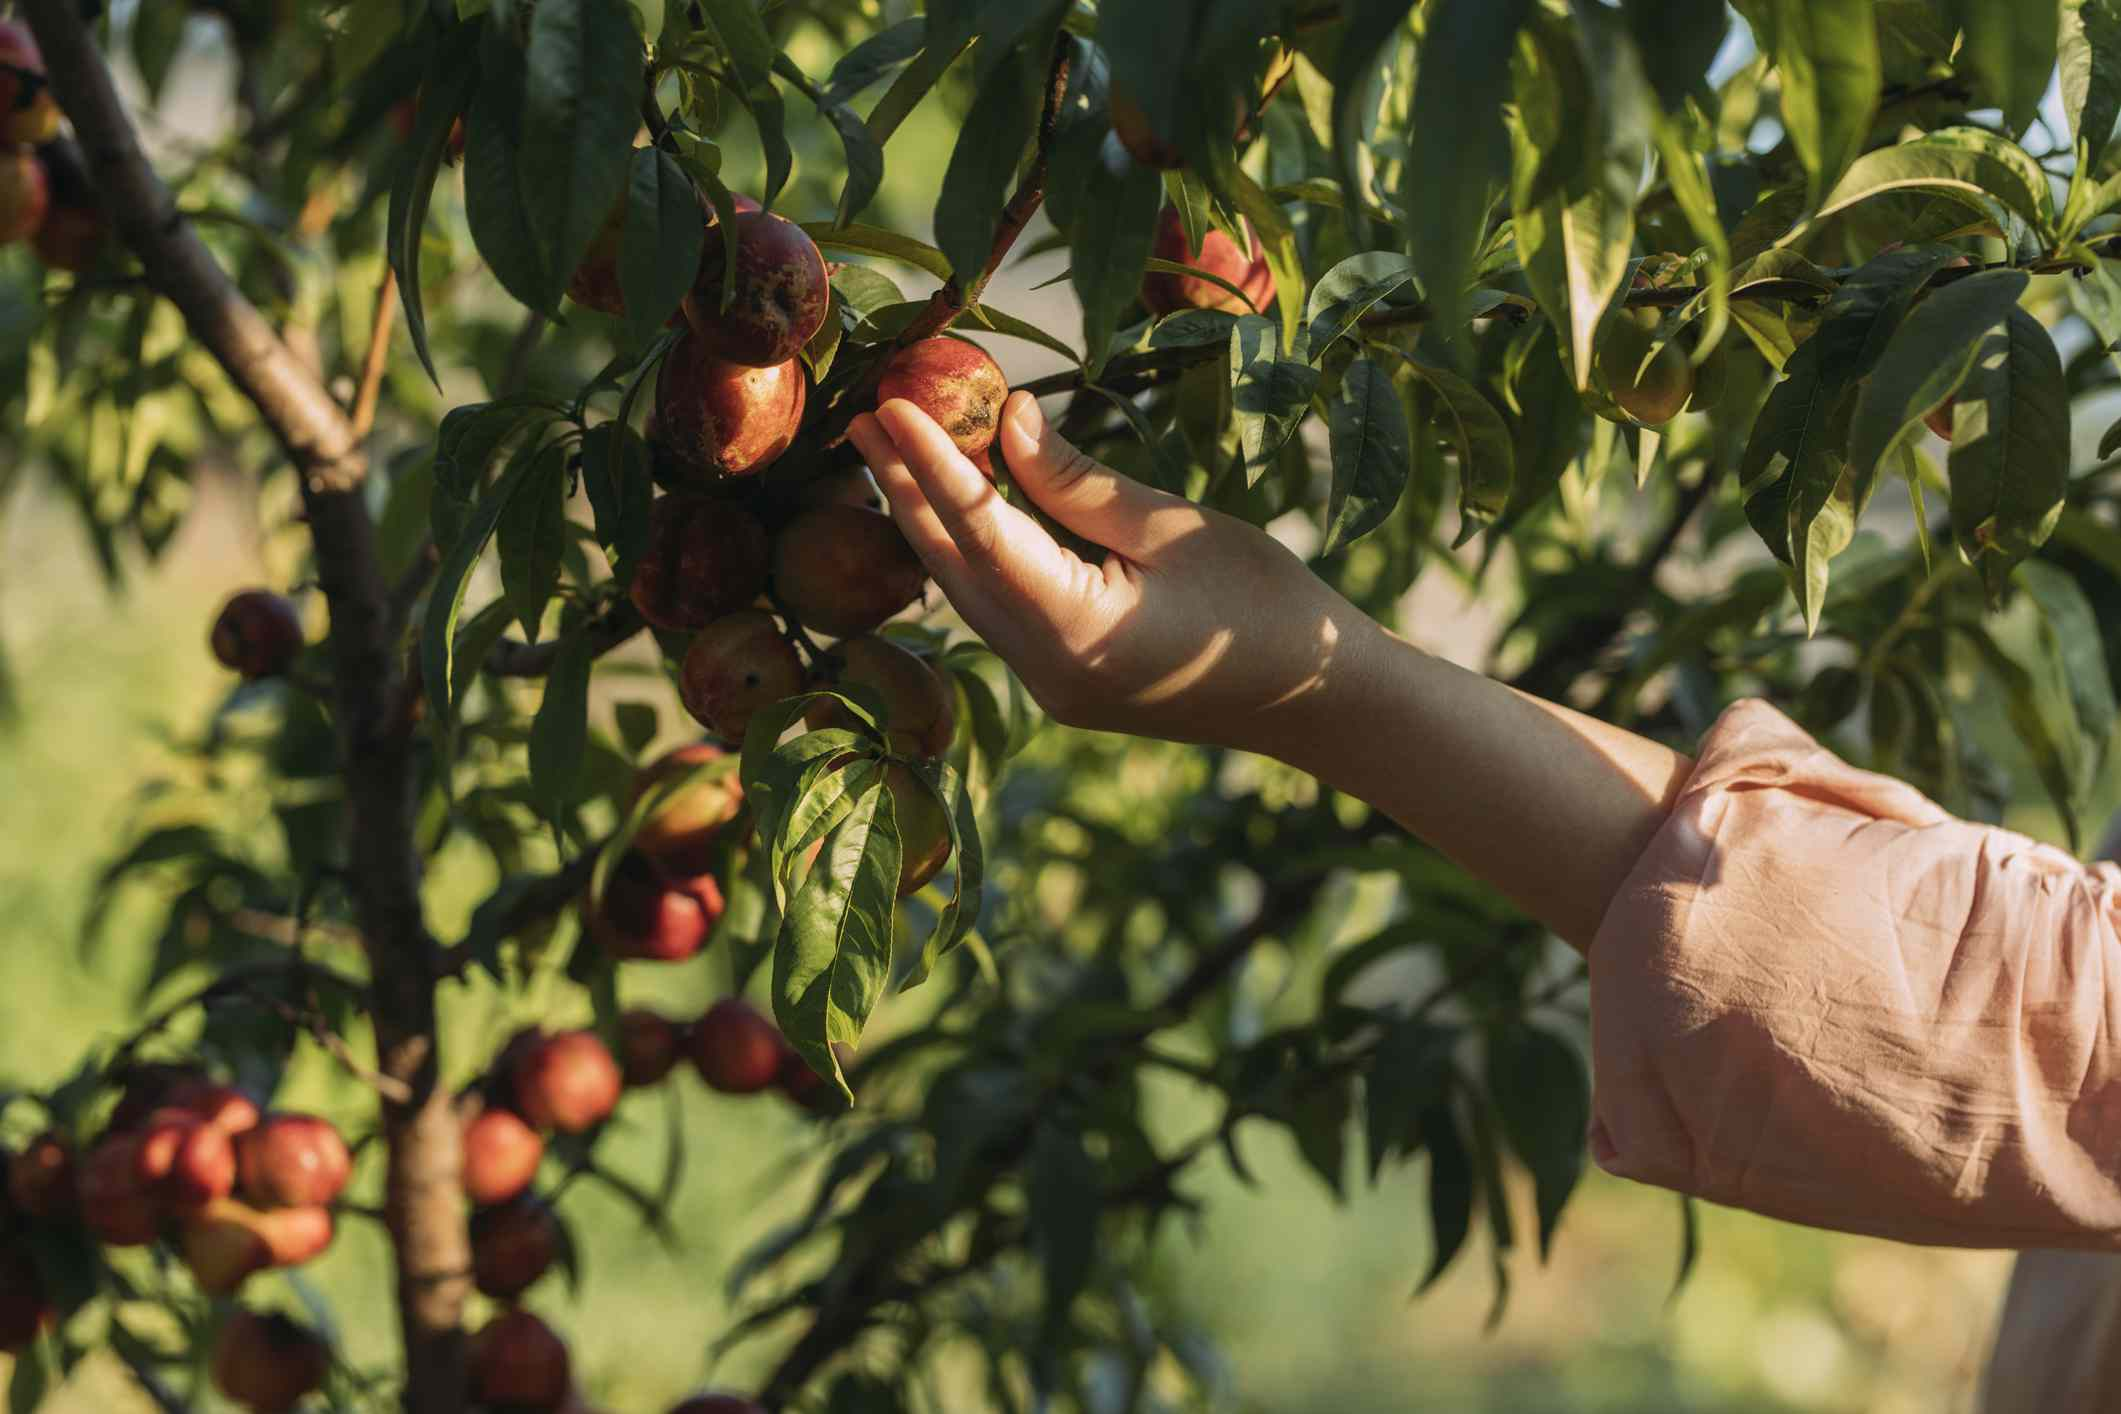 A woman picking organic peaches from a tree.